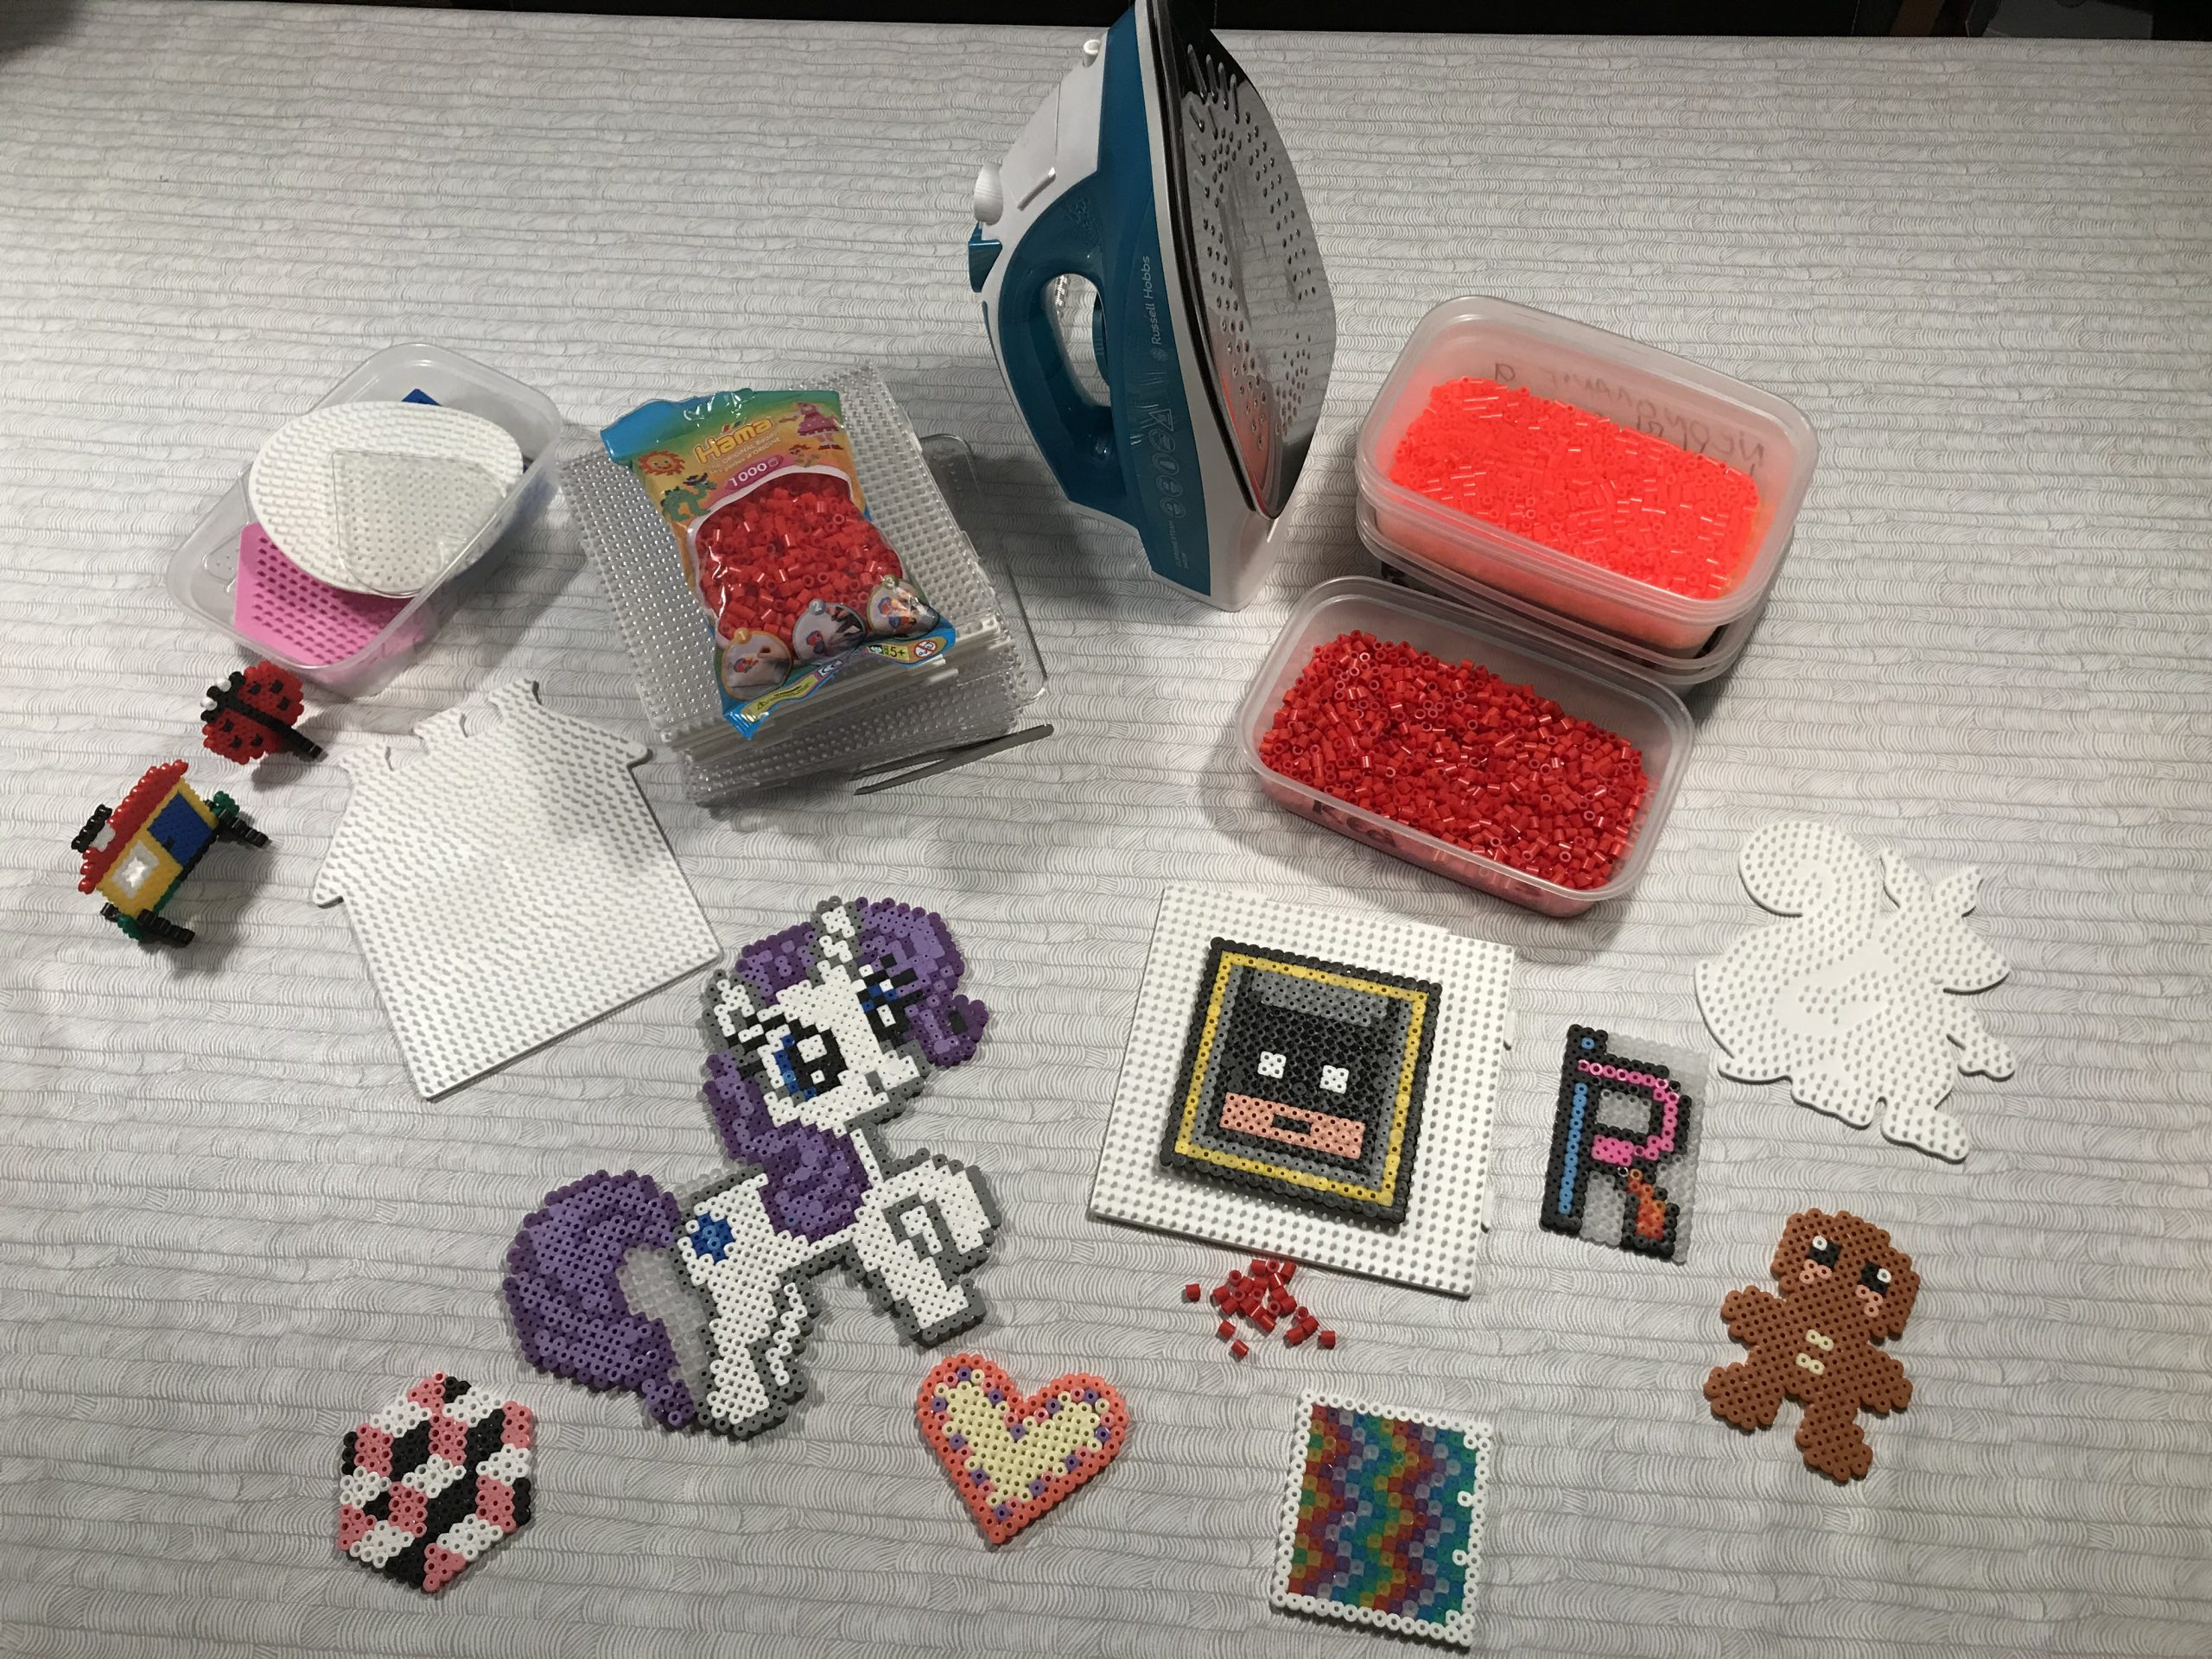 All the Hama Bead supplies you need